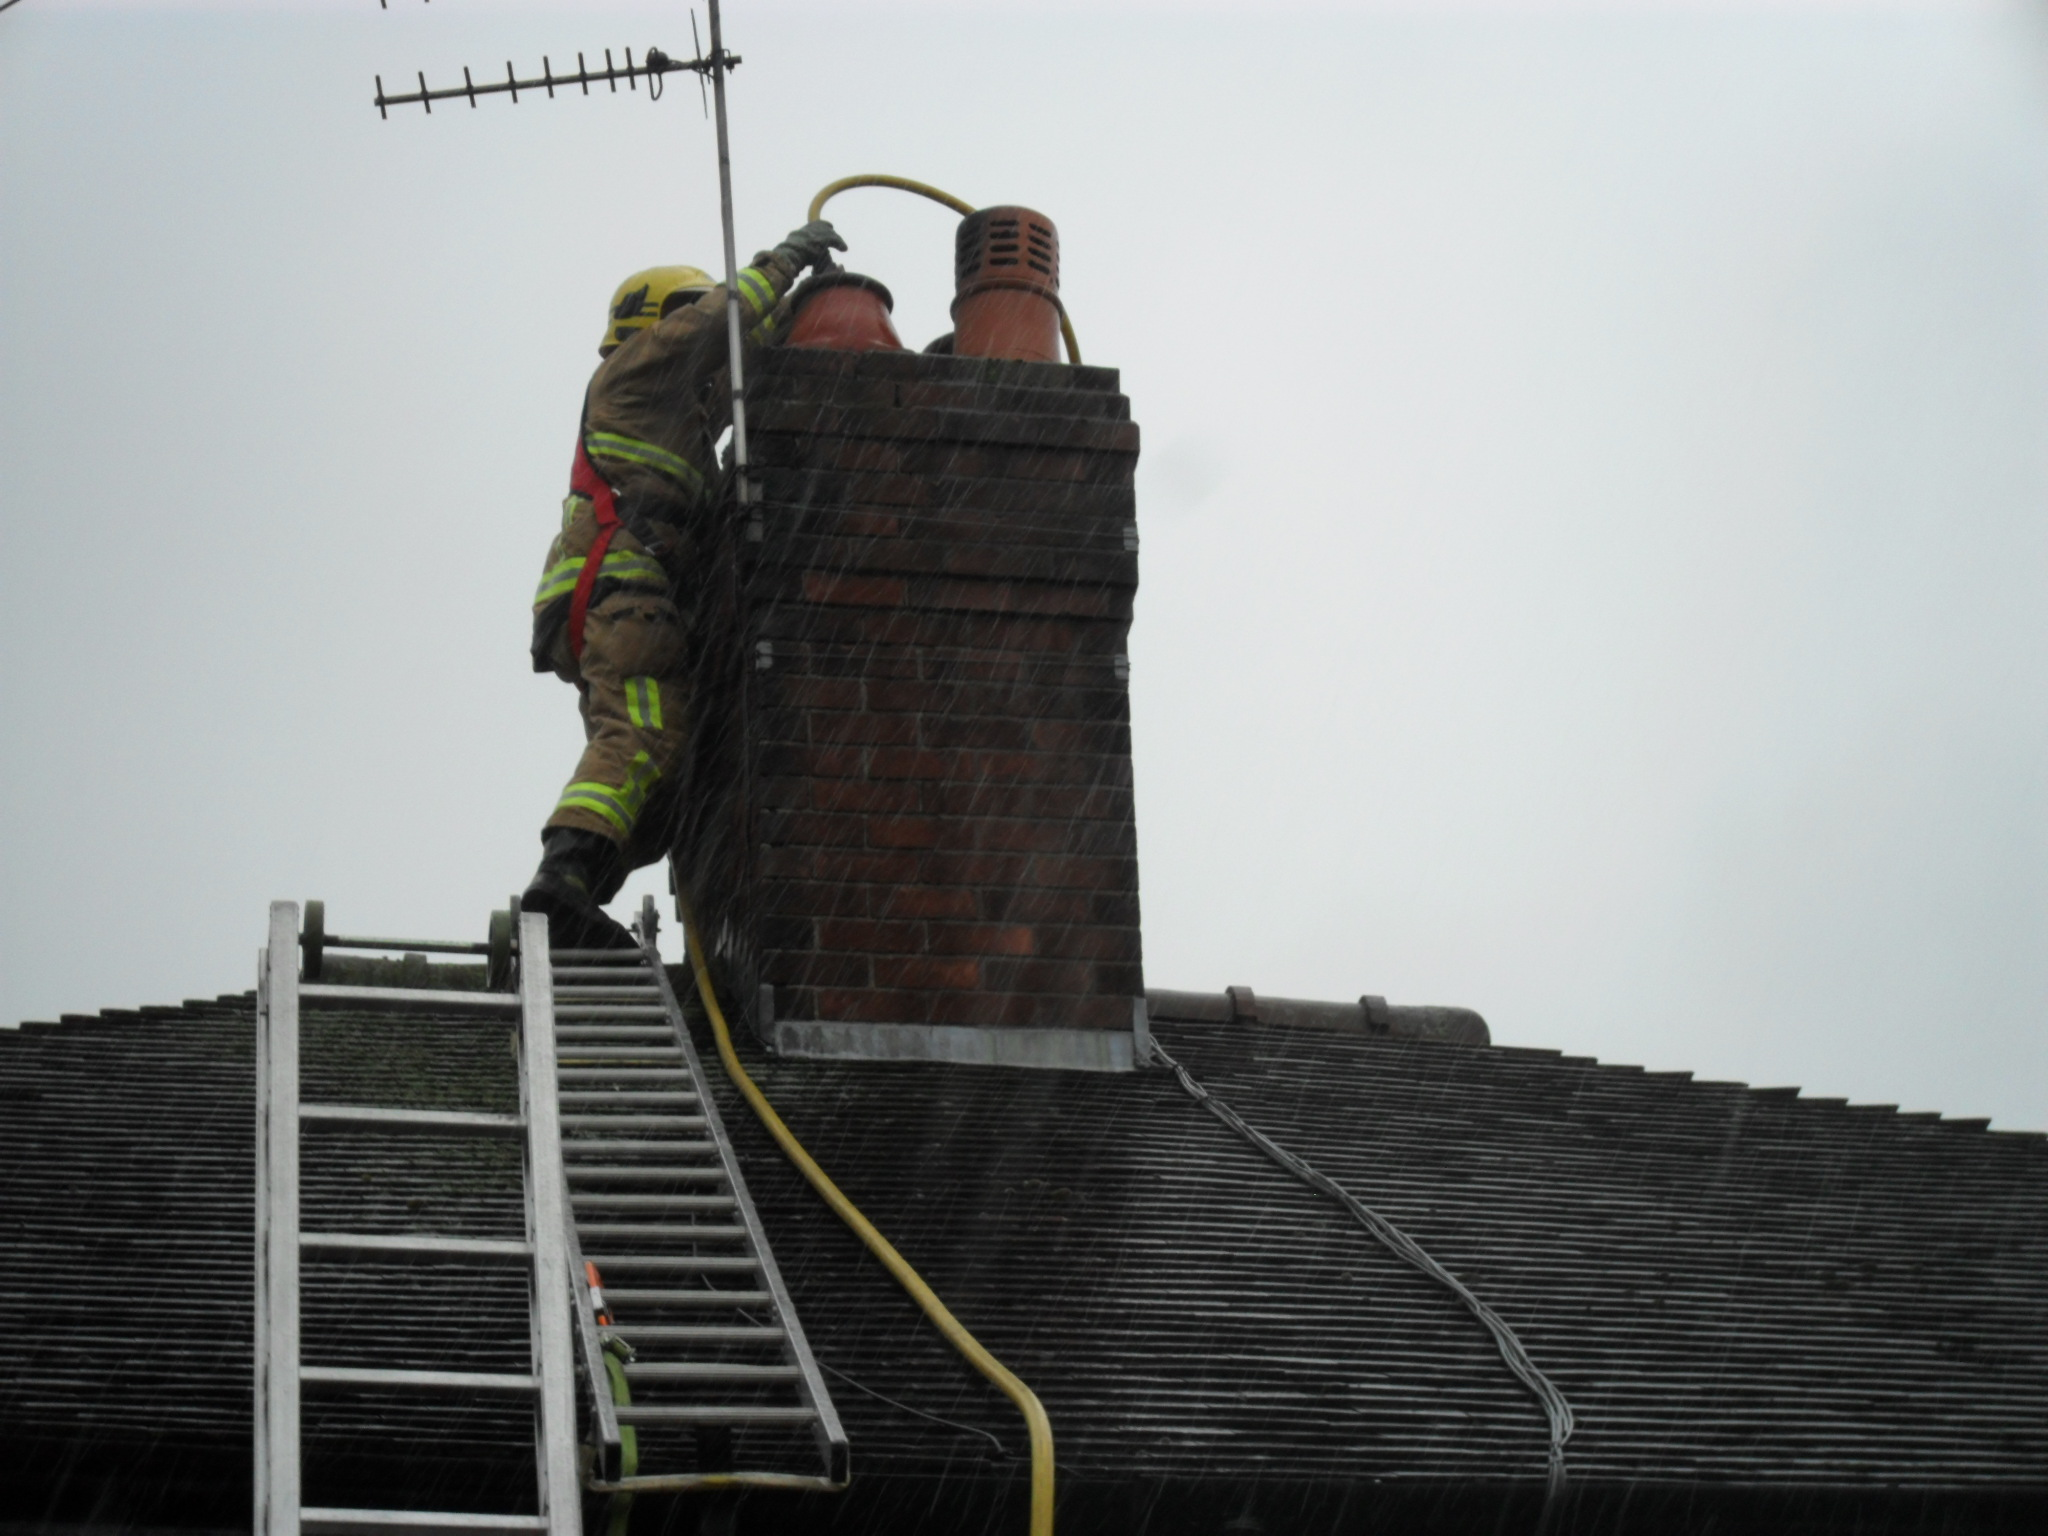 Chimney Fire Safety